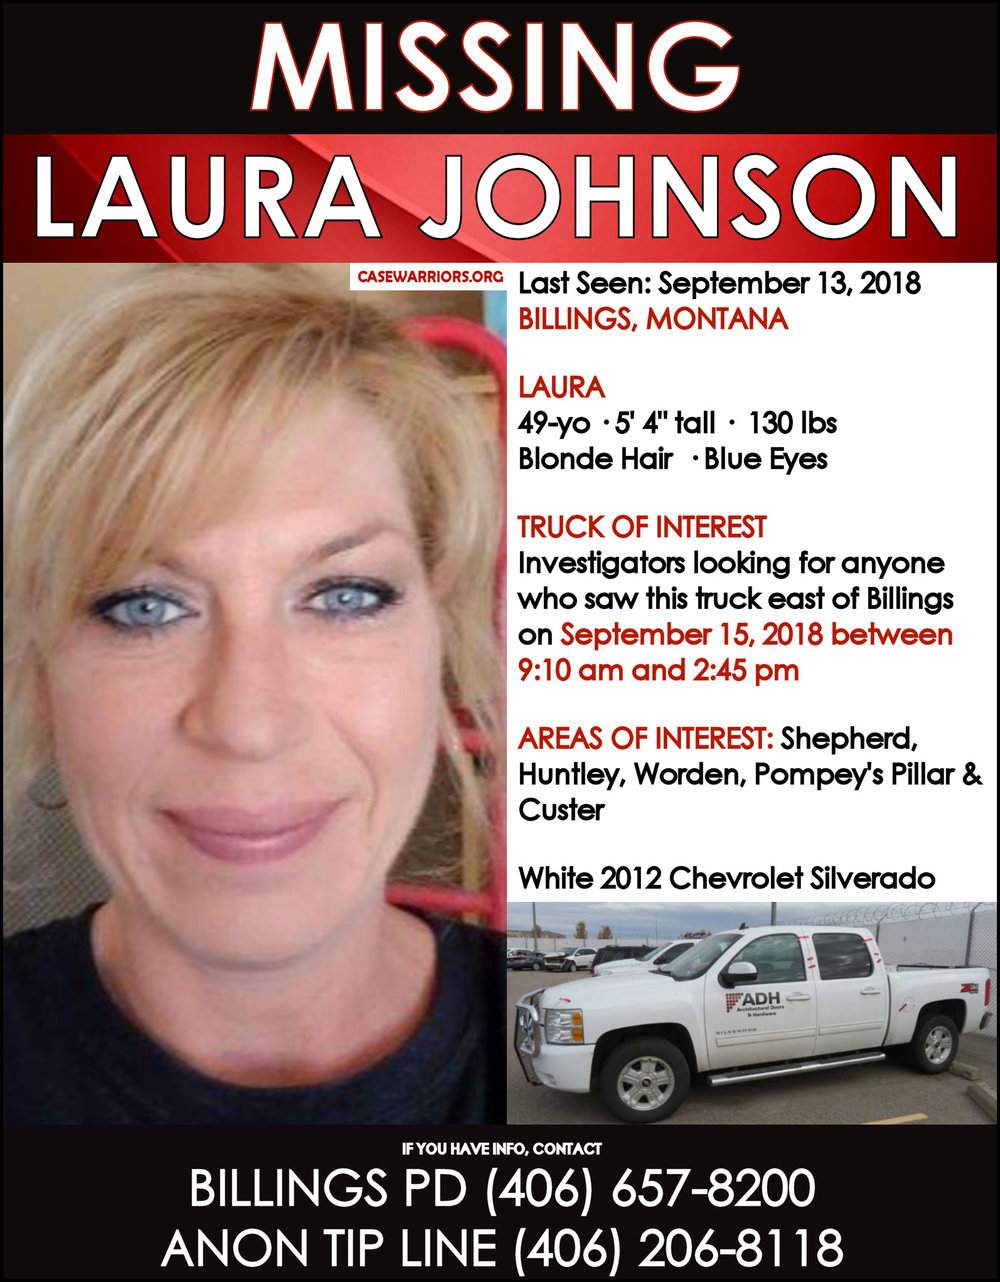 LAURA JOHNSON